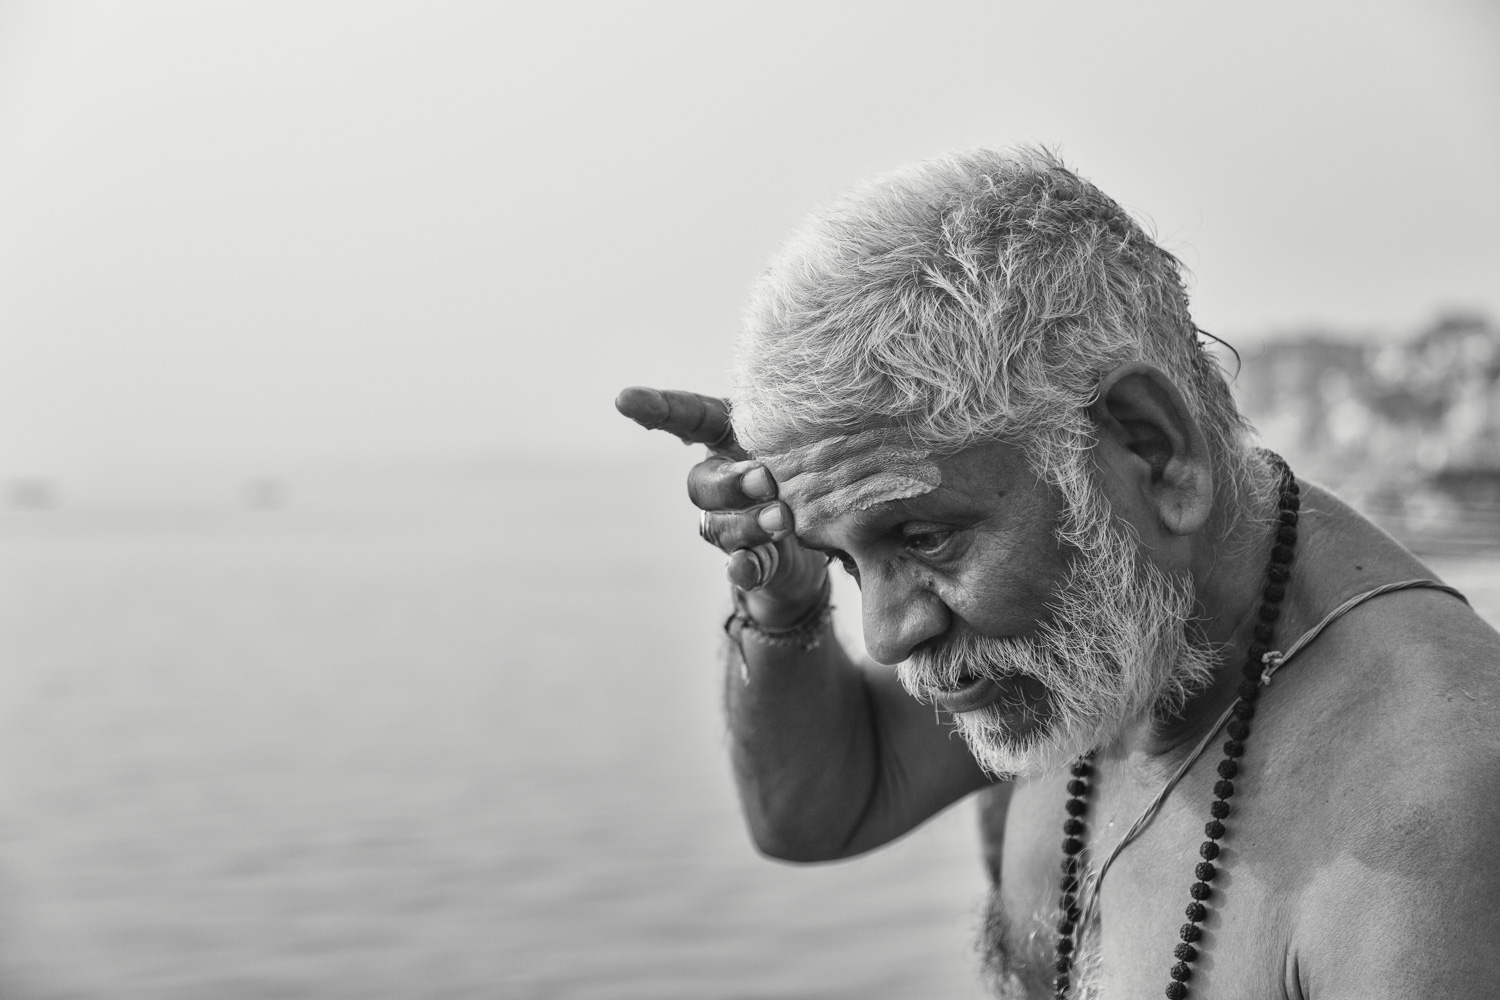 A Baba during his morning ritual at the Ganges in Varanasi - Copyright: Daniel Hofmann